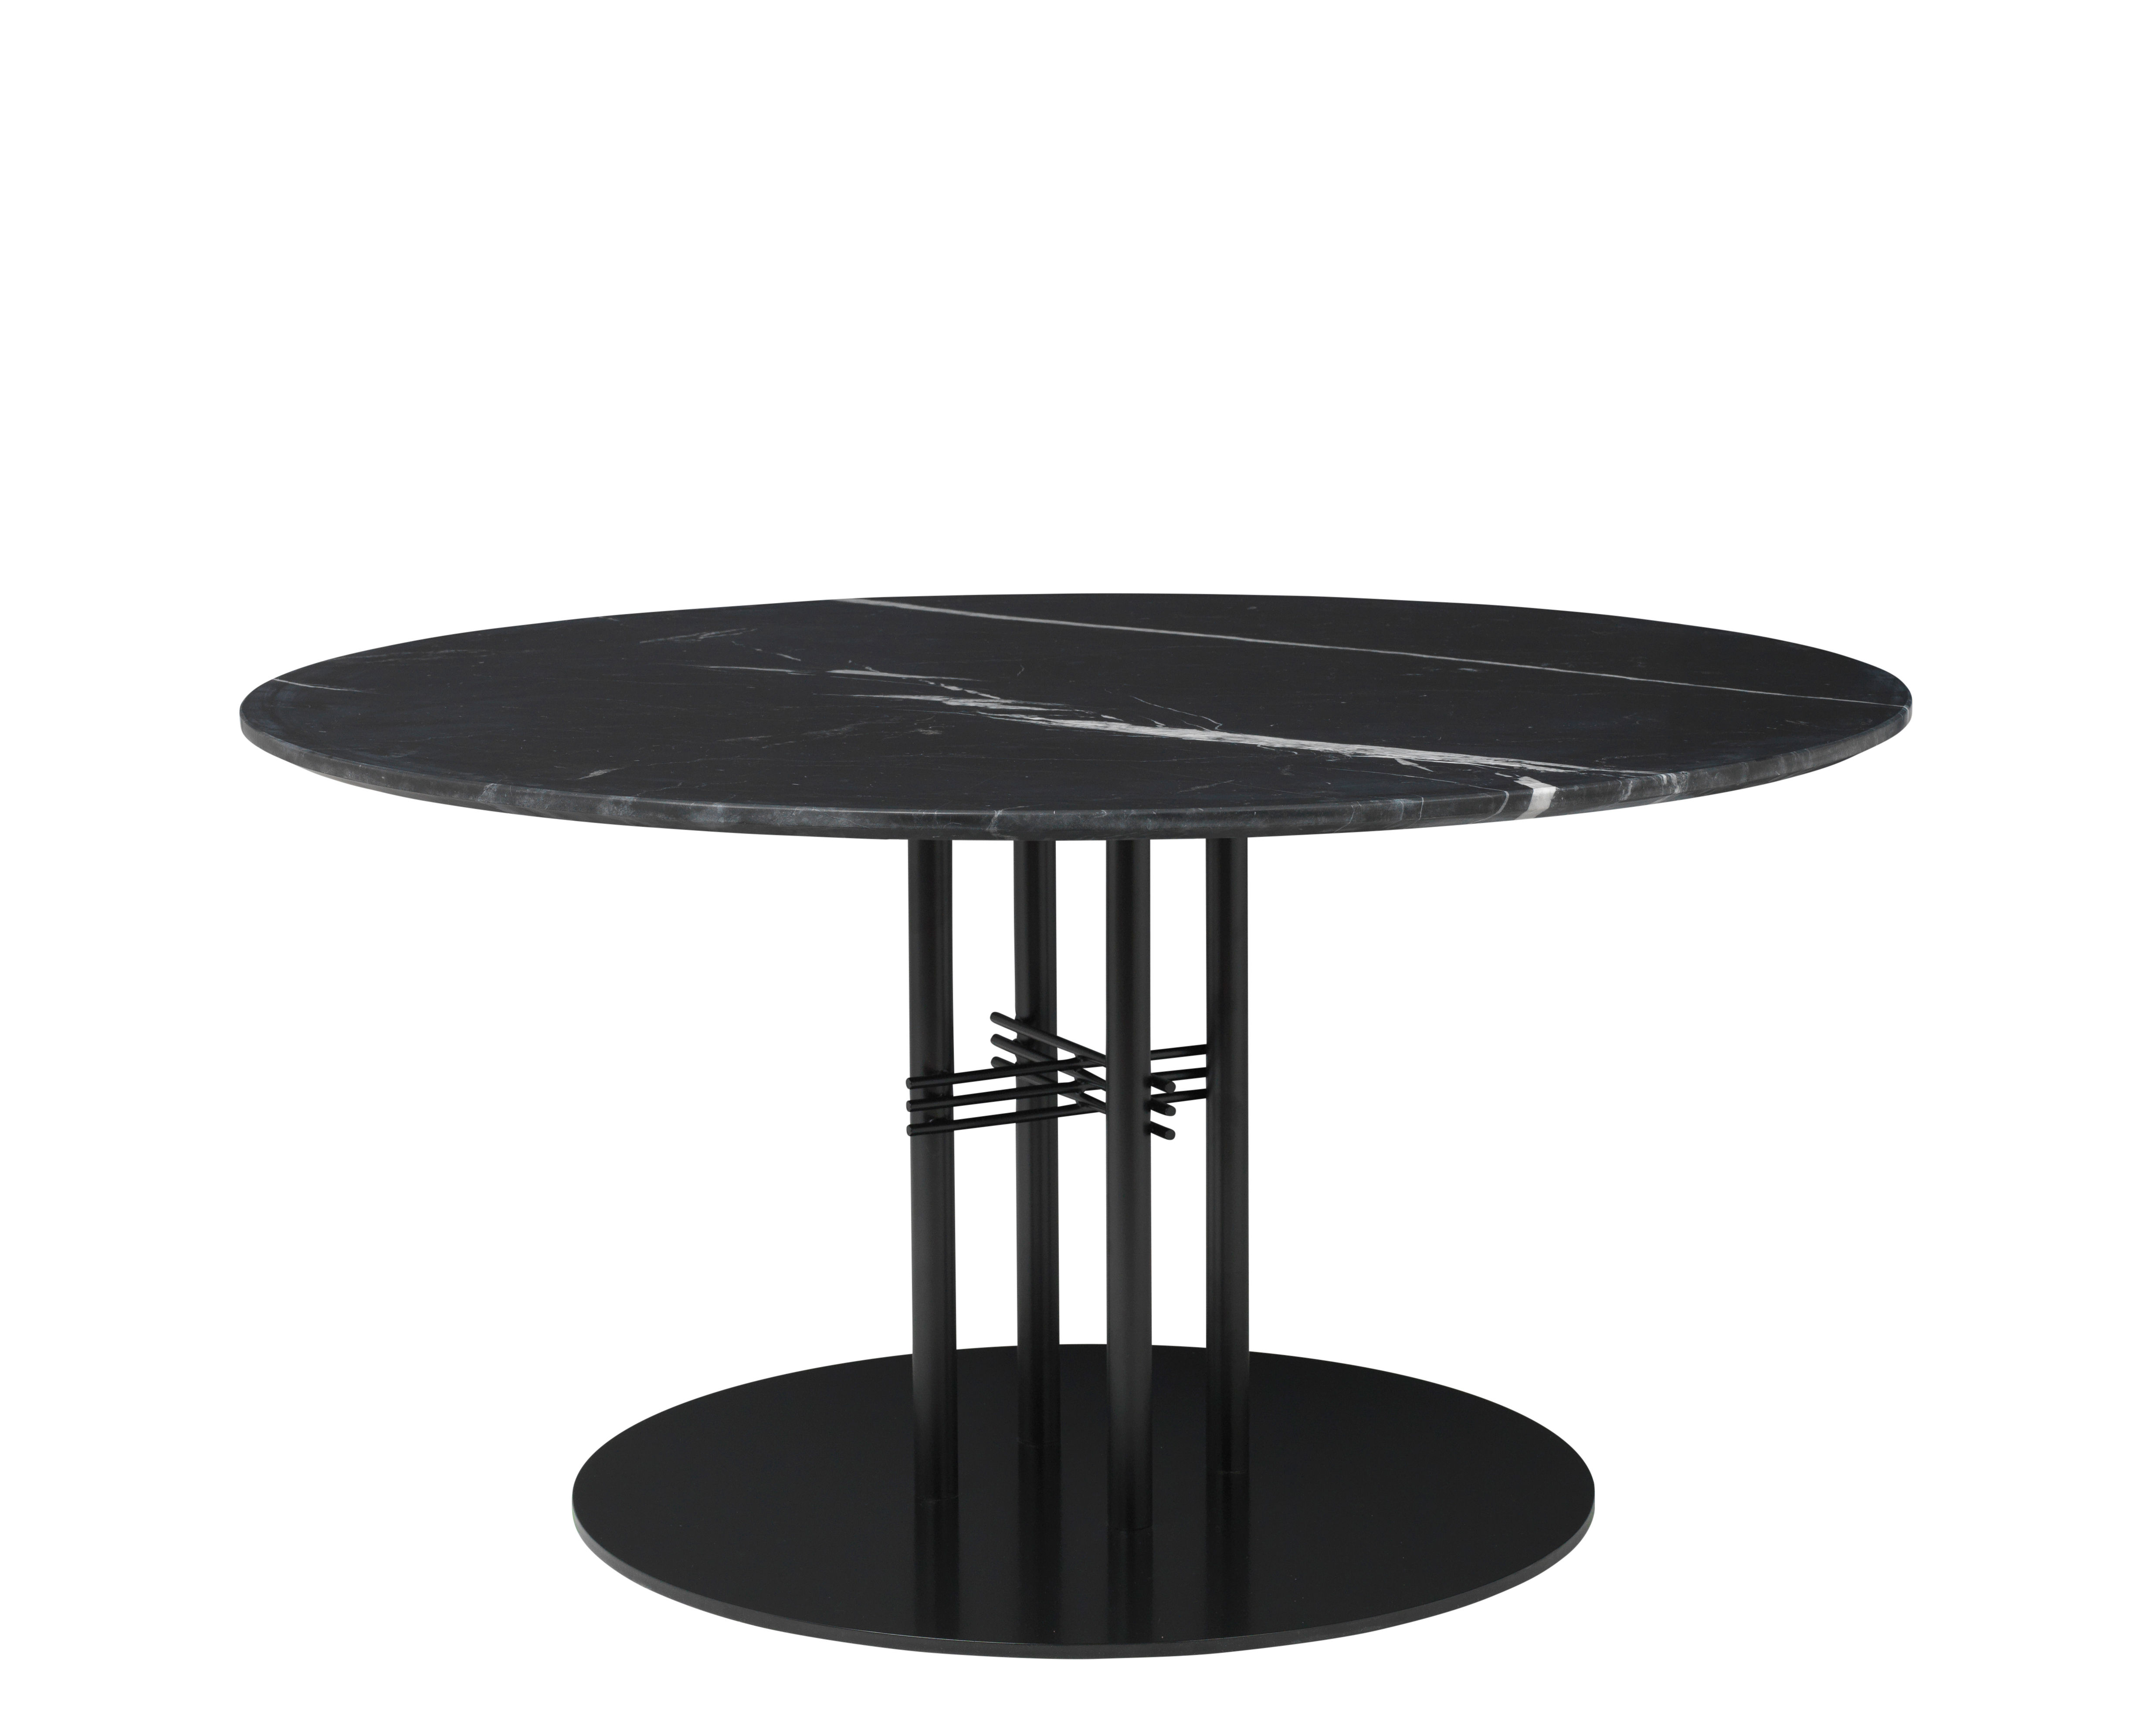 Furniture - Coffee Tables - TS Column Coffee table - /Gamfratesi - Ø 110 x H 60 cm by Gubi - Black Marble/Black legs - Lacquered metal, Marquina marble